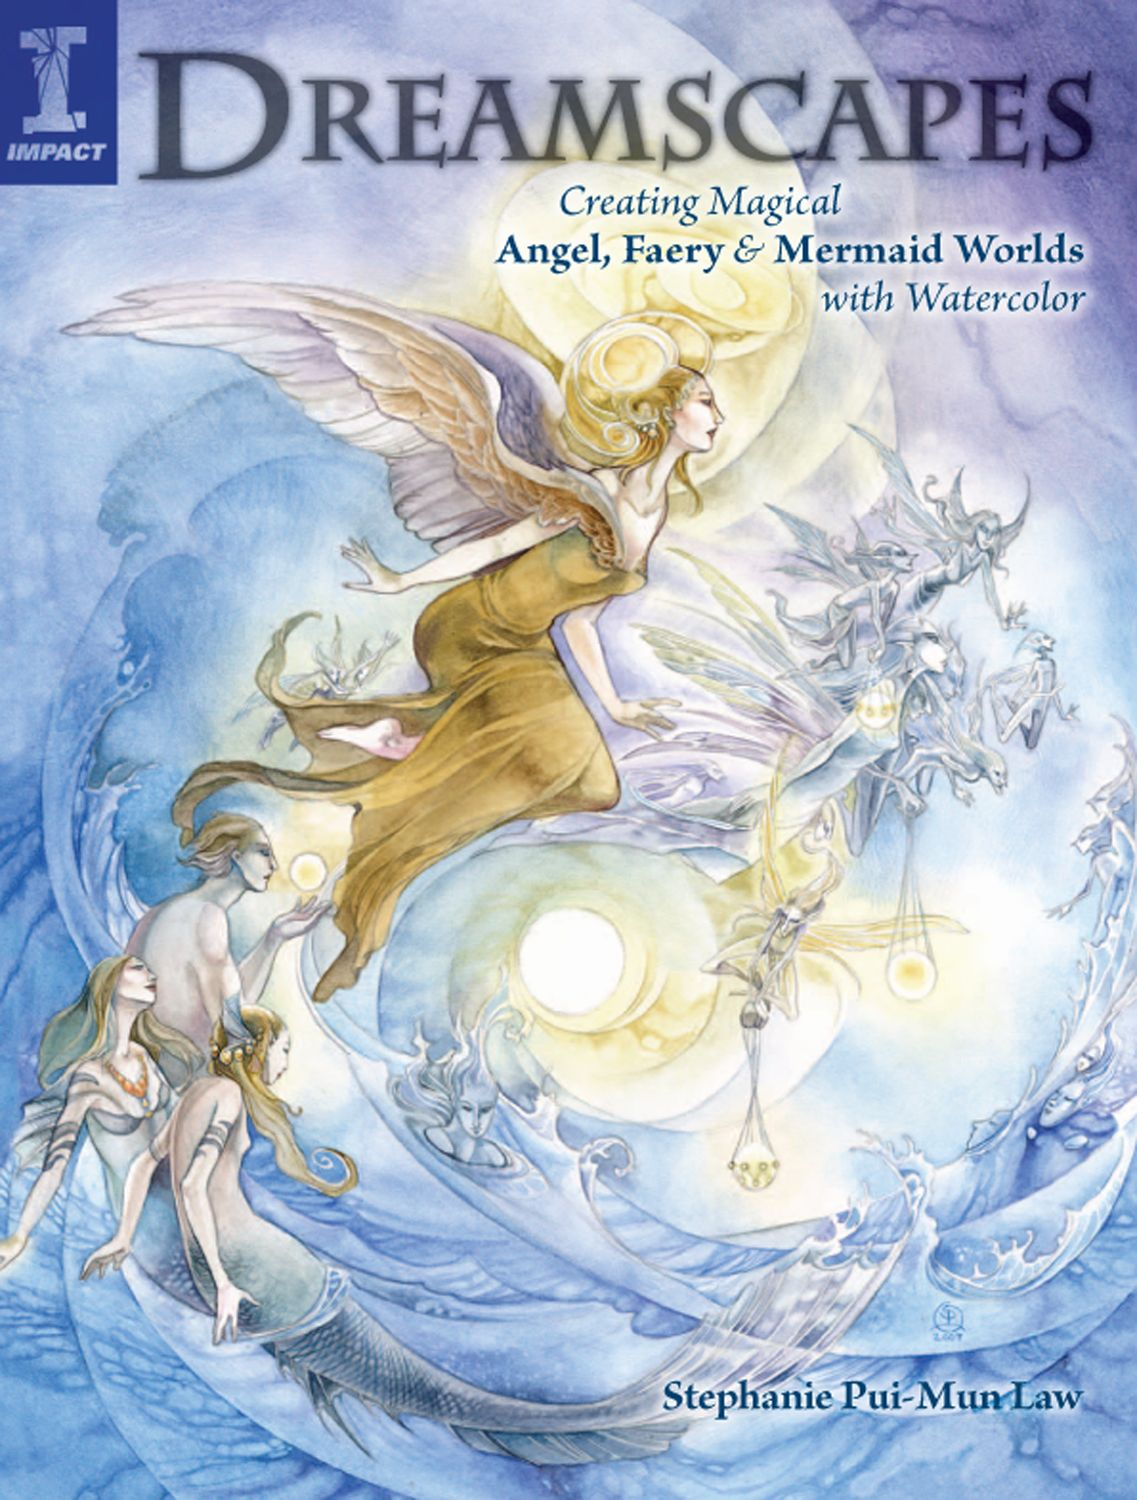 Dreamscapes: Creating Magical Angel, Faery & Mermaid Worlds In Watercolor